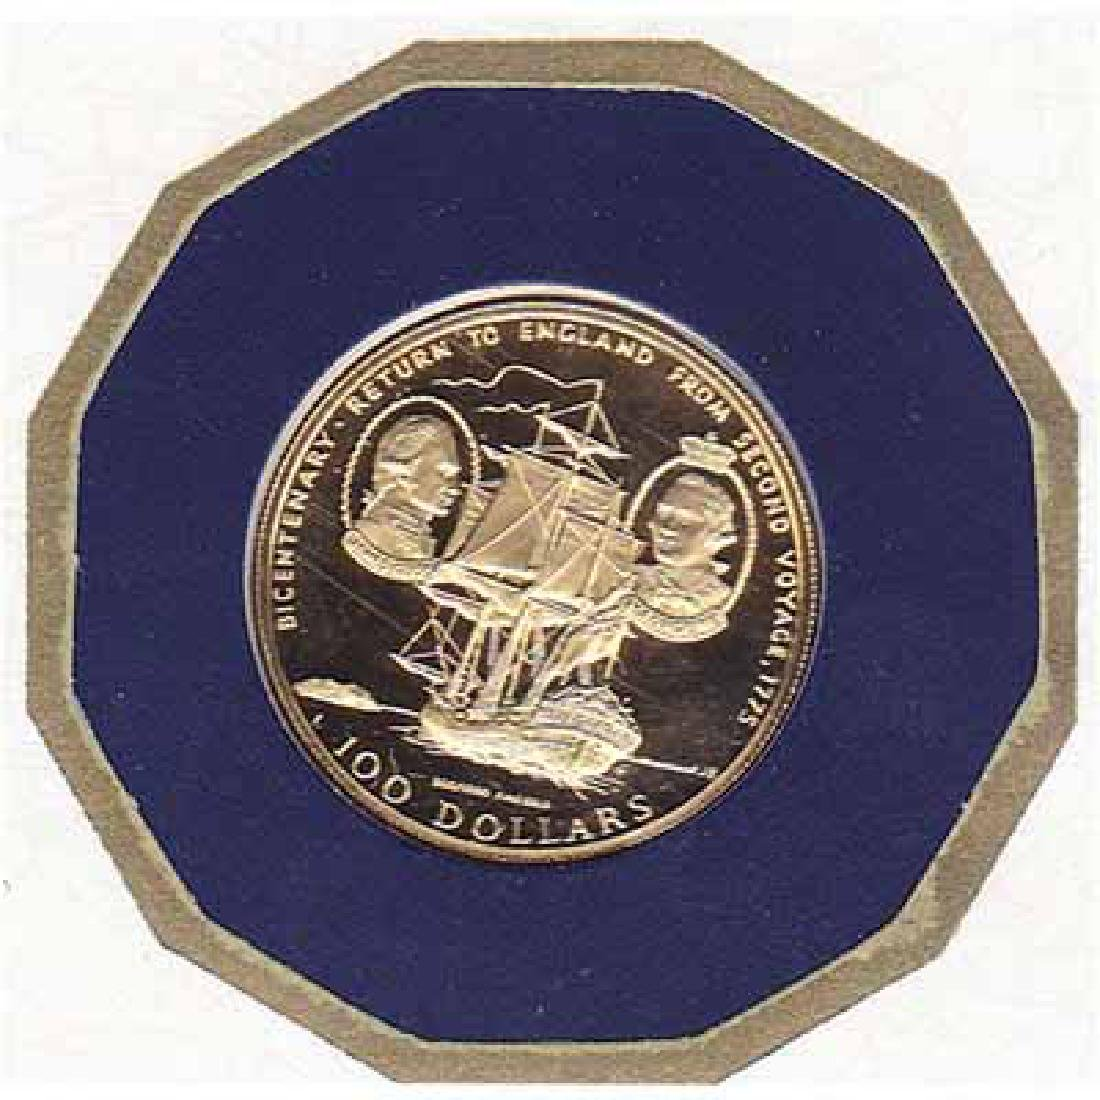 Cook Islands $100 Gold PF 1975 Cook Bicentenary